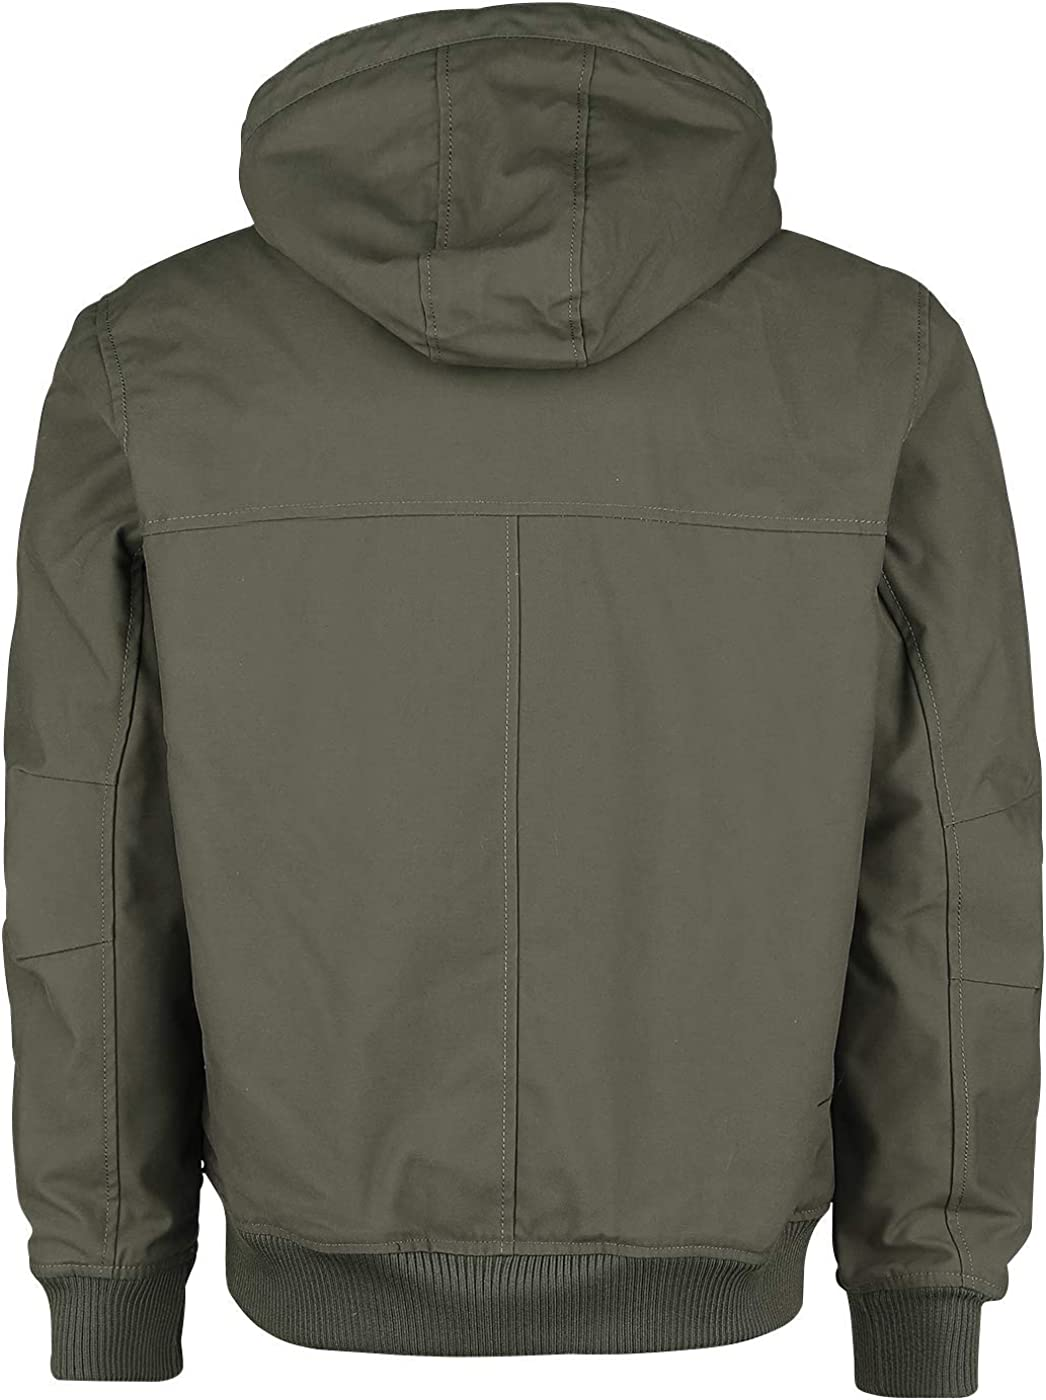 Giacca invernale Hudson Vintage Industries Uomo Giacche